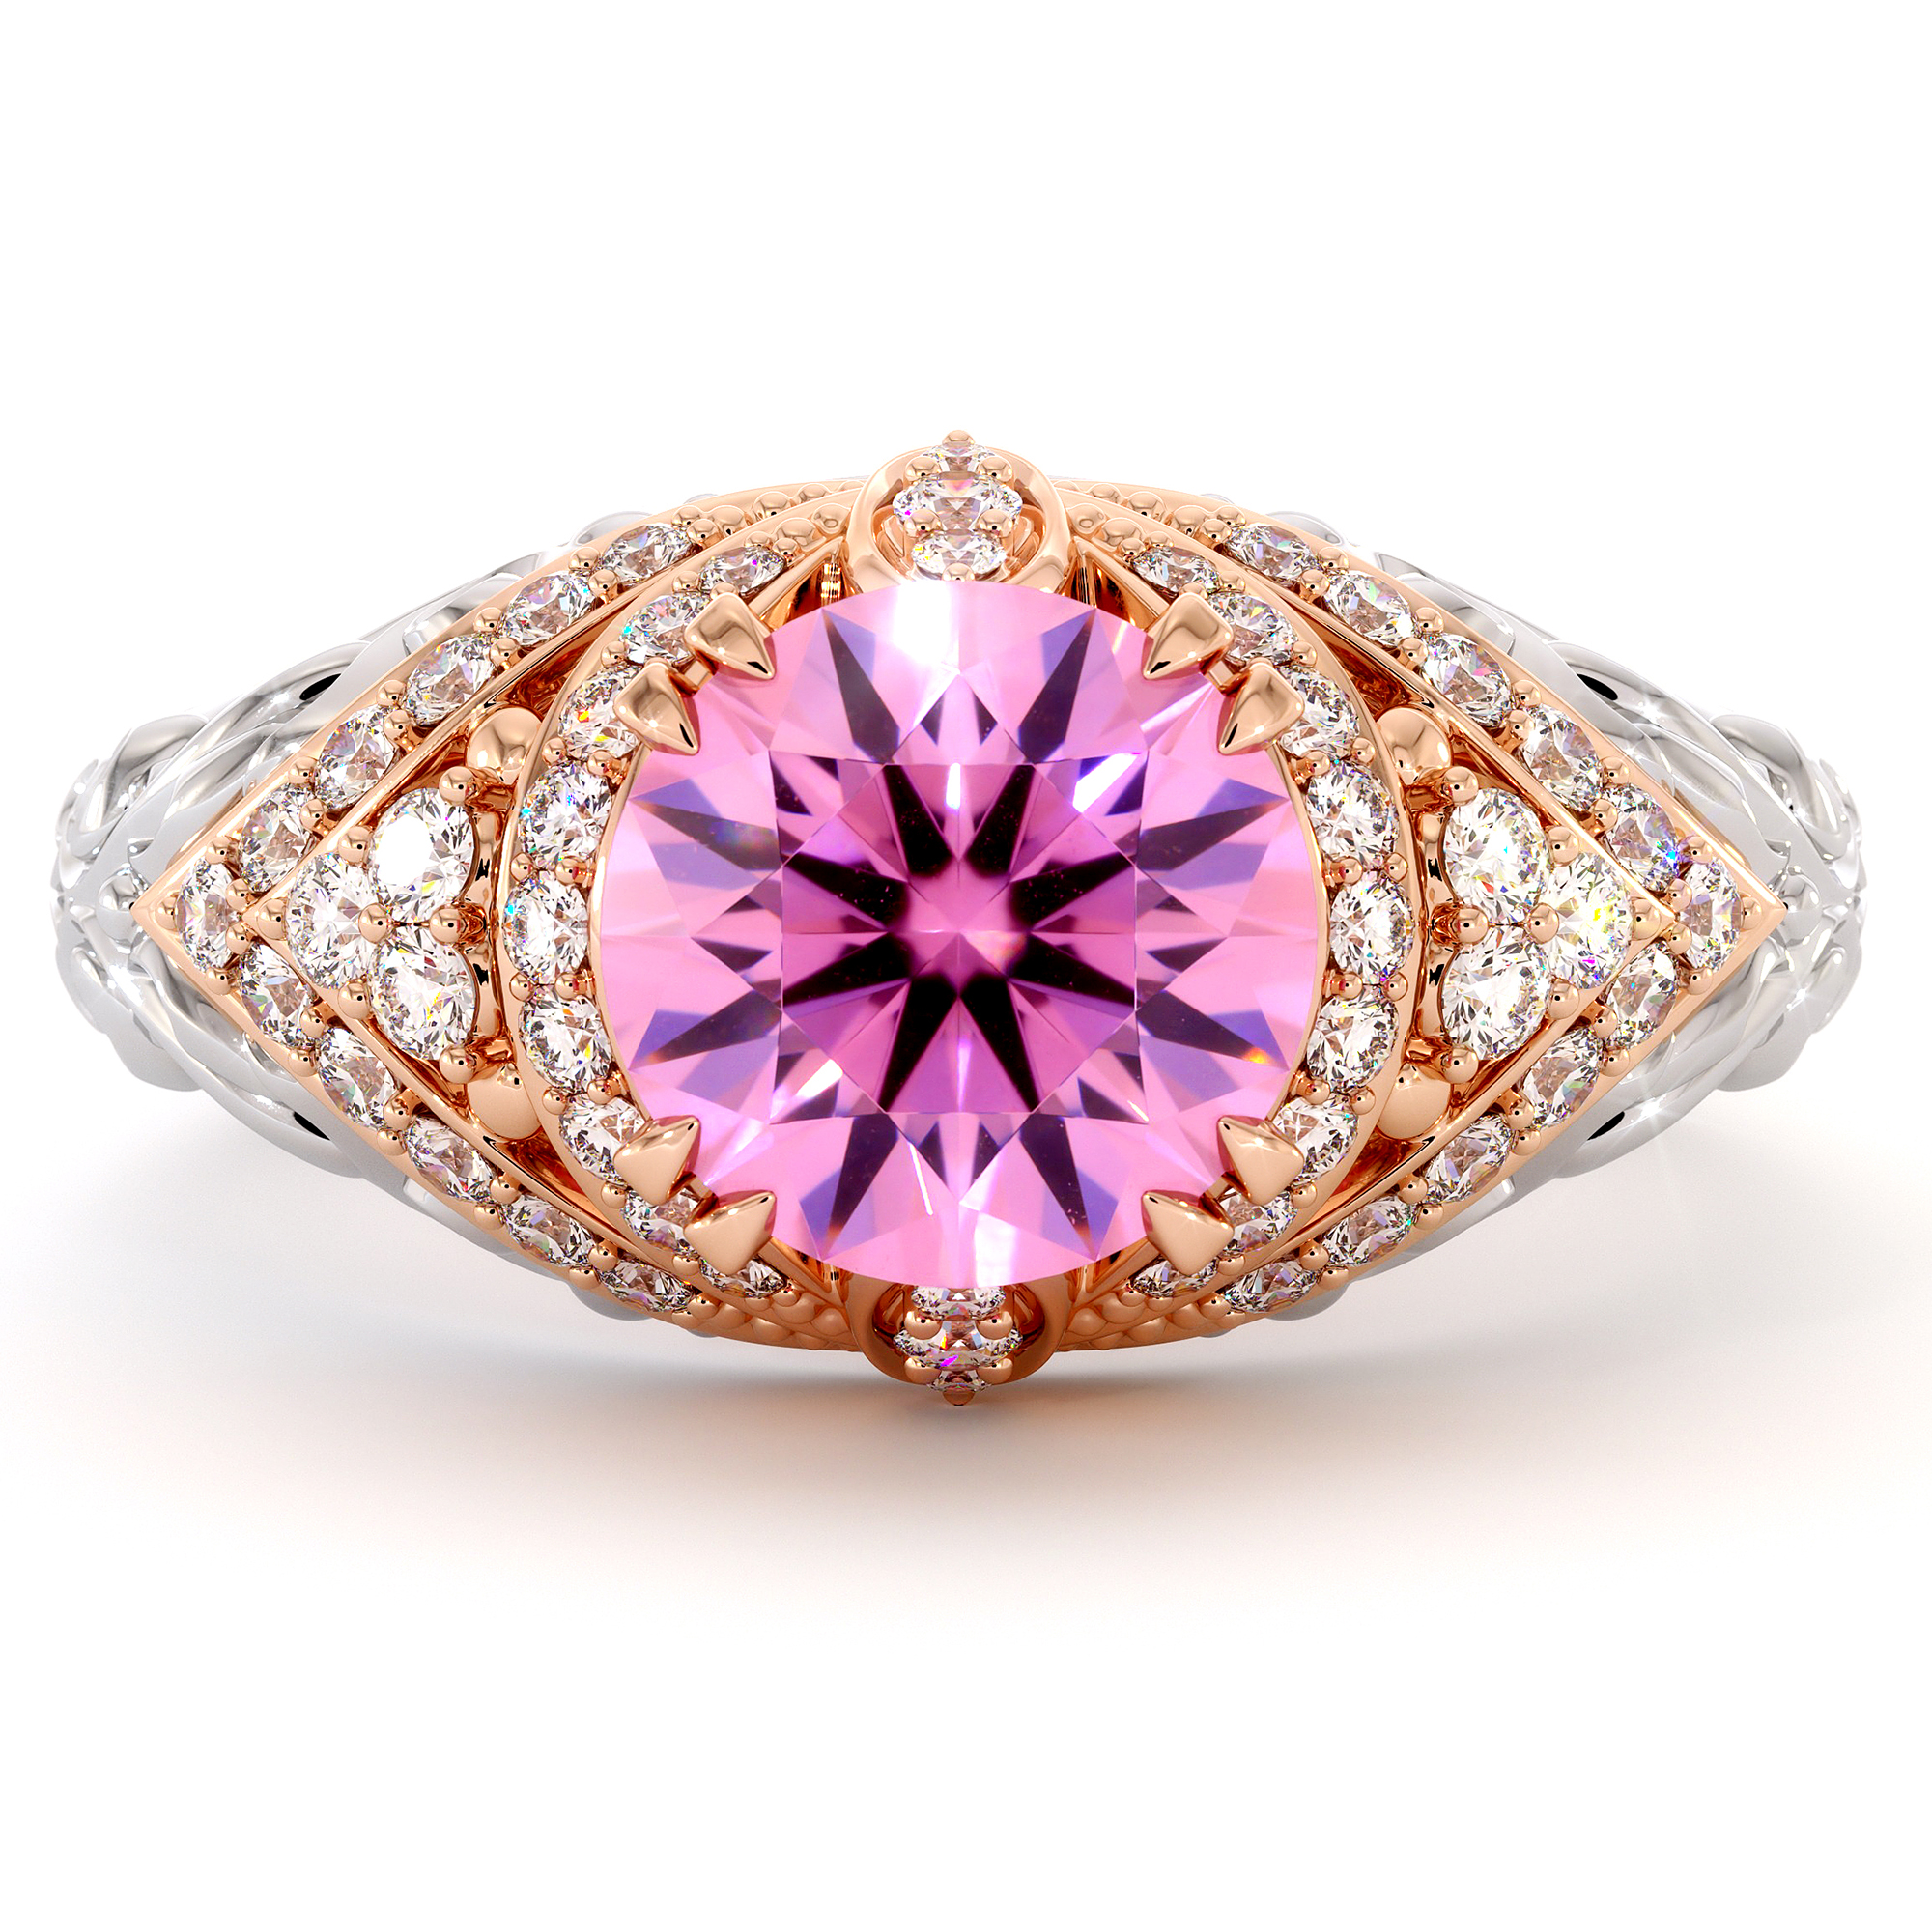 Two Tone 2 Ct Pink Sapphire Engagement Ring Filigree Regal  Solid Gold Ring